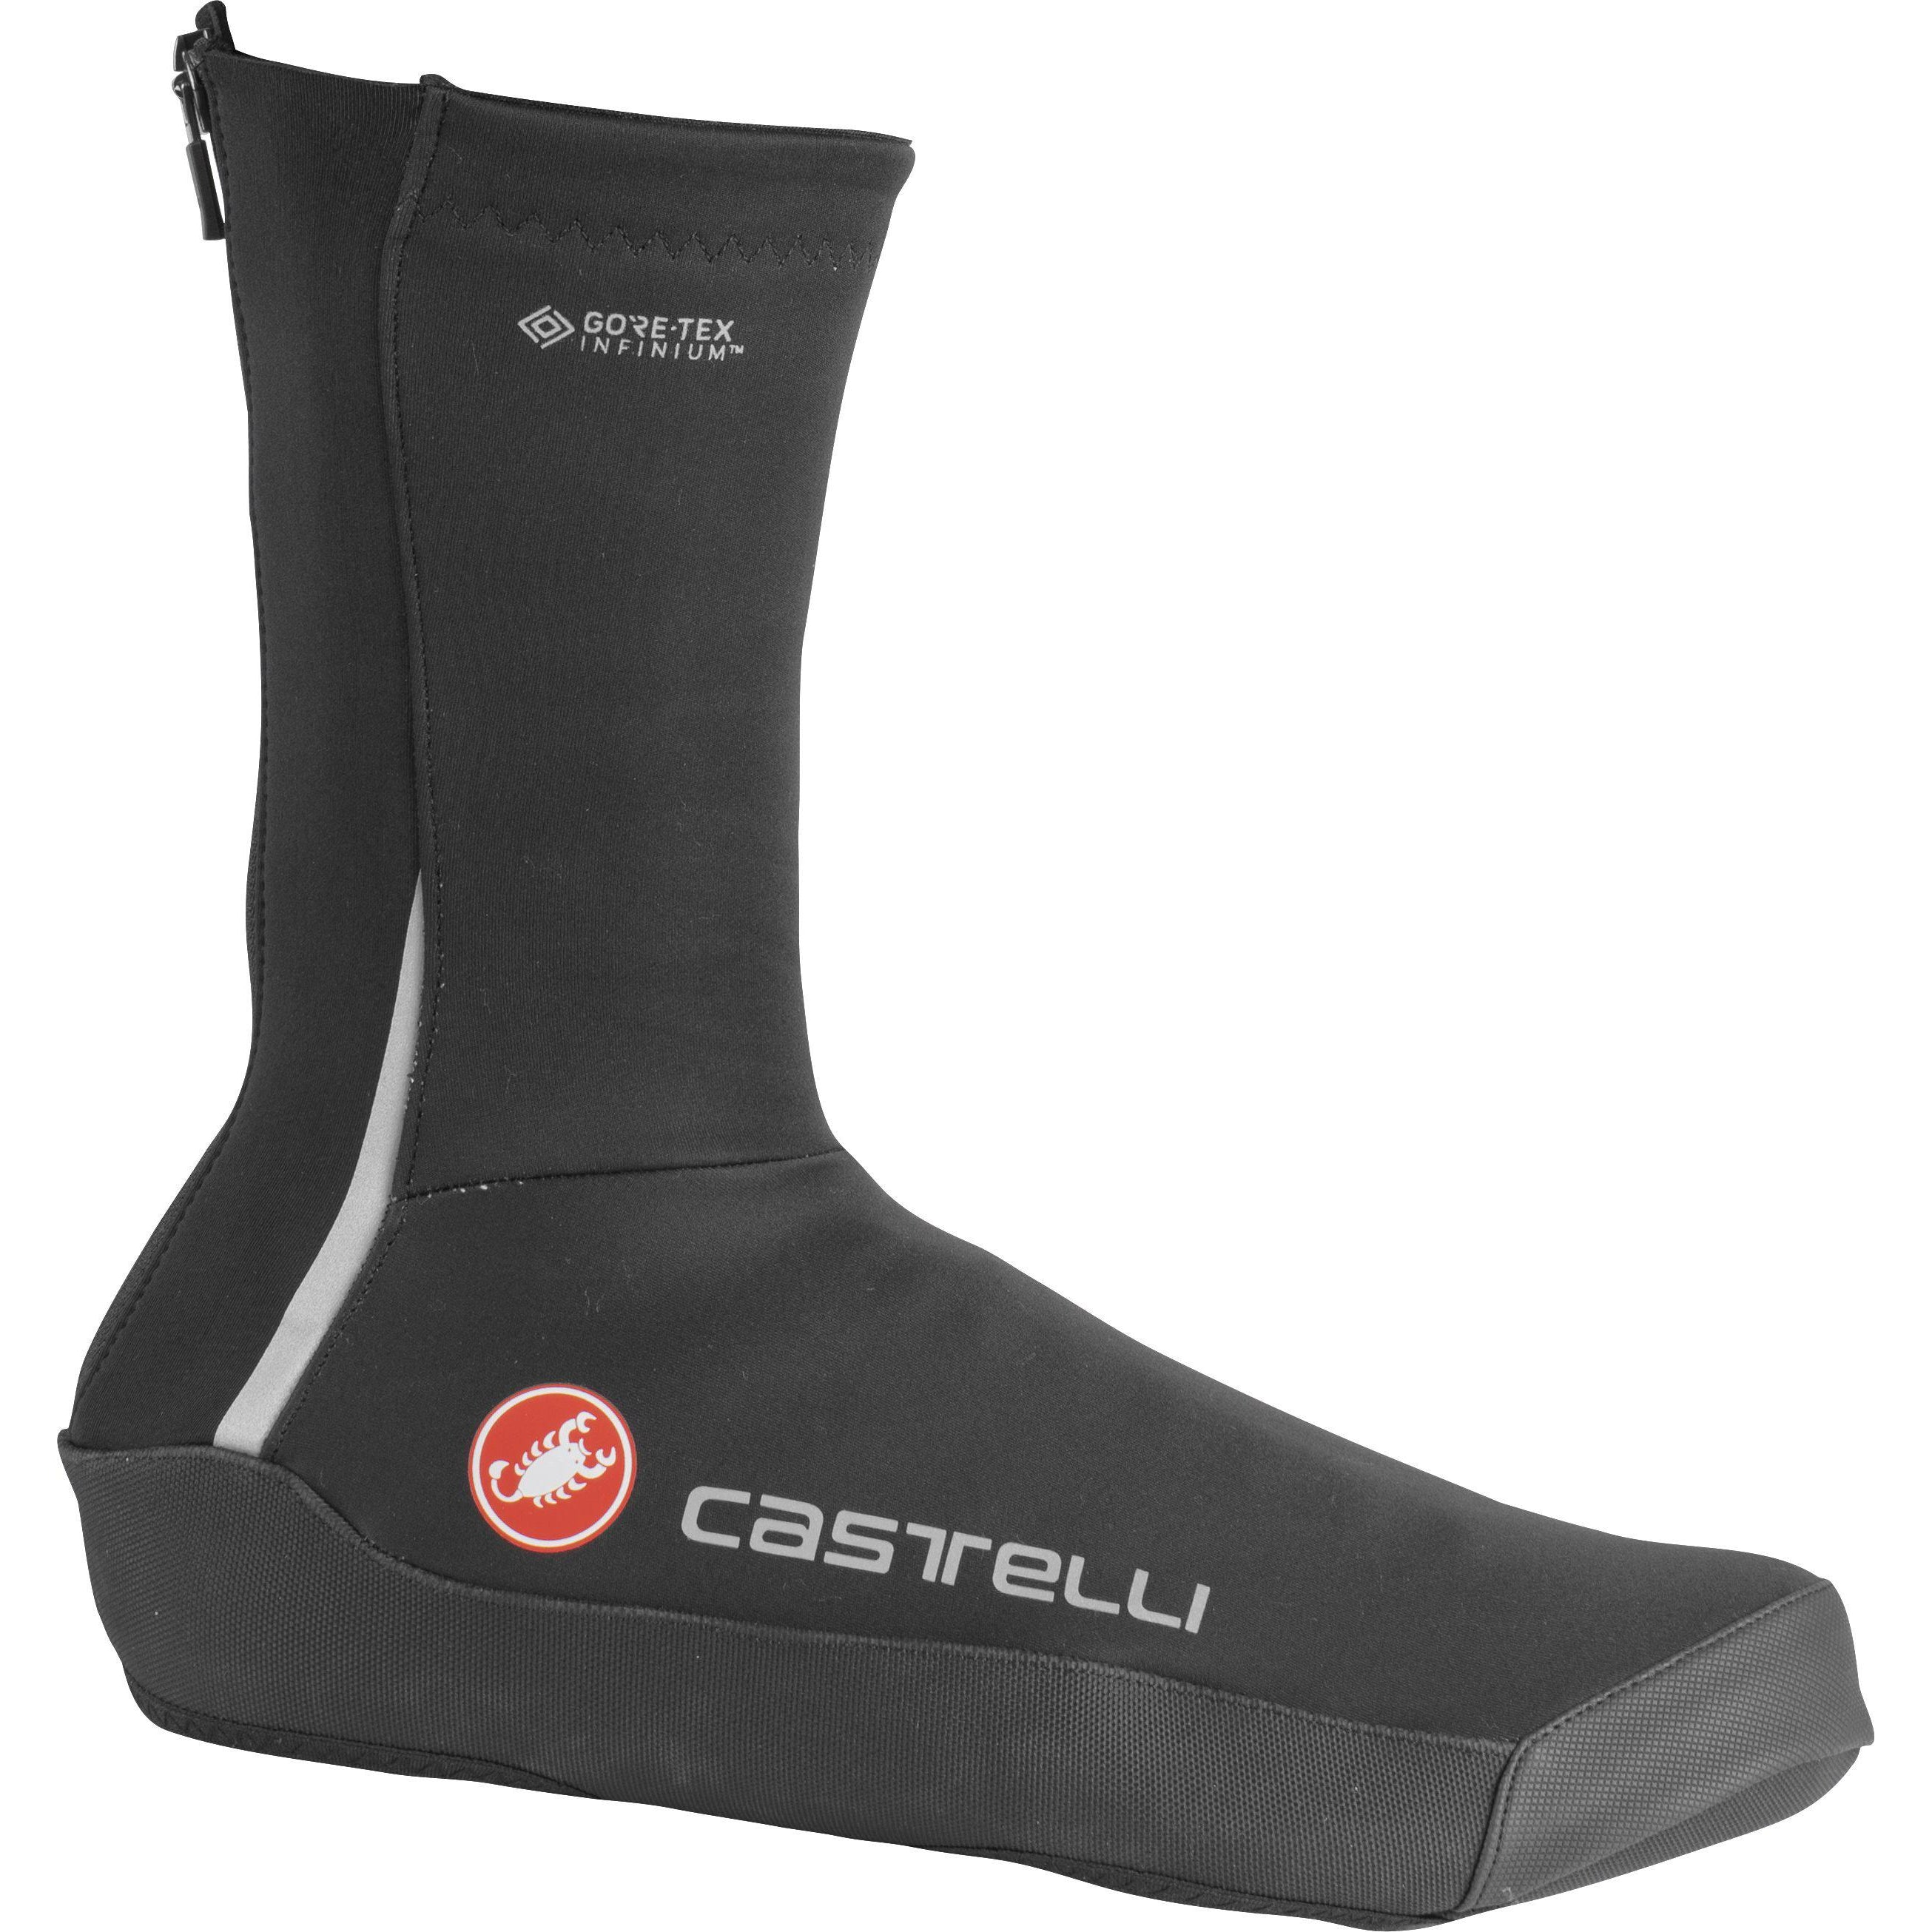 Castelli-Castelli Intenso UL Shoe Covers-Light Black-S-CS205380852-saddleback-elite-performance-cycling